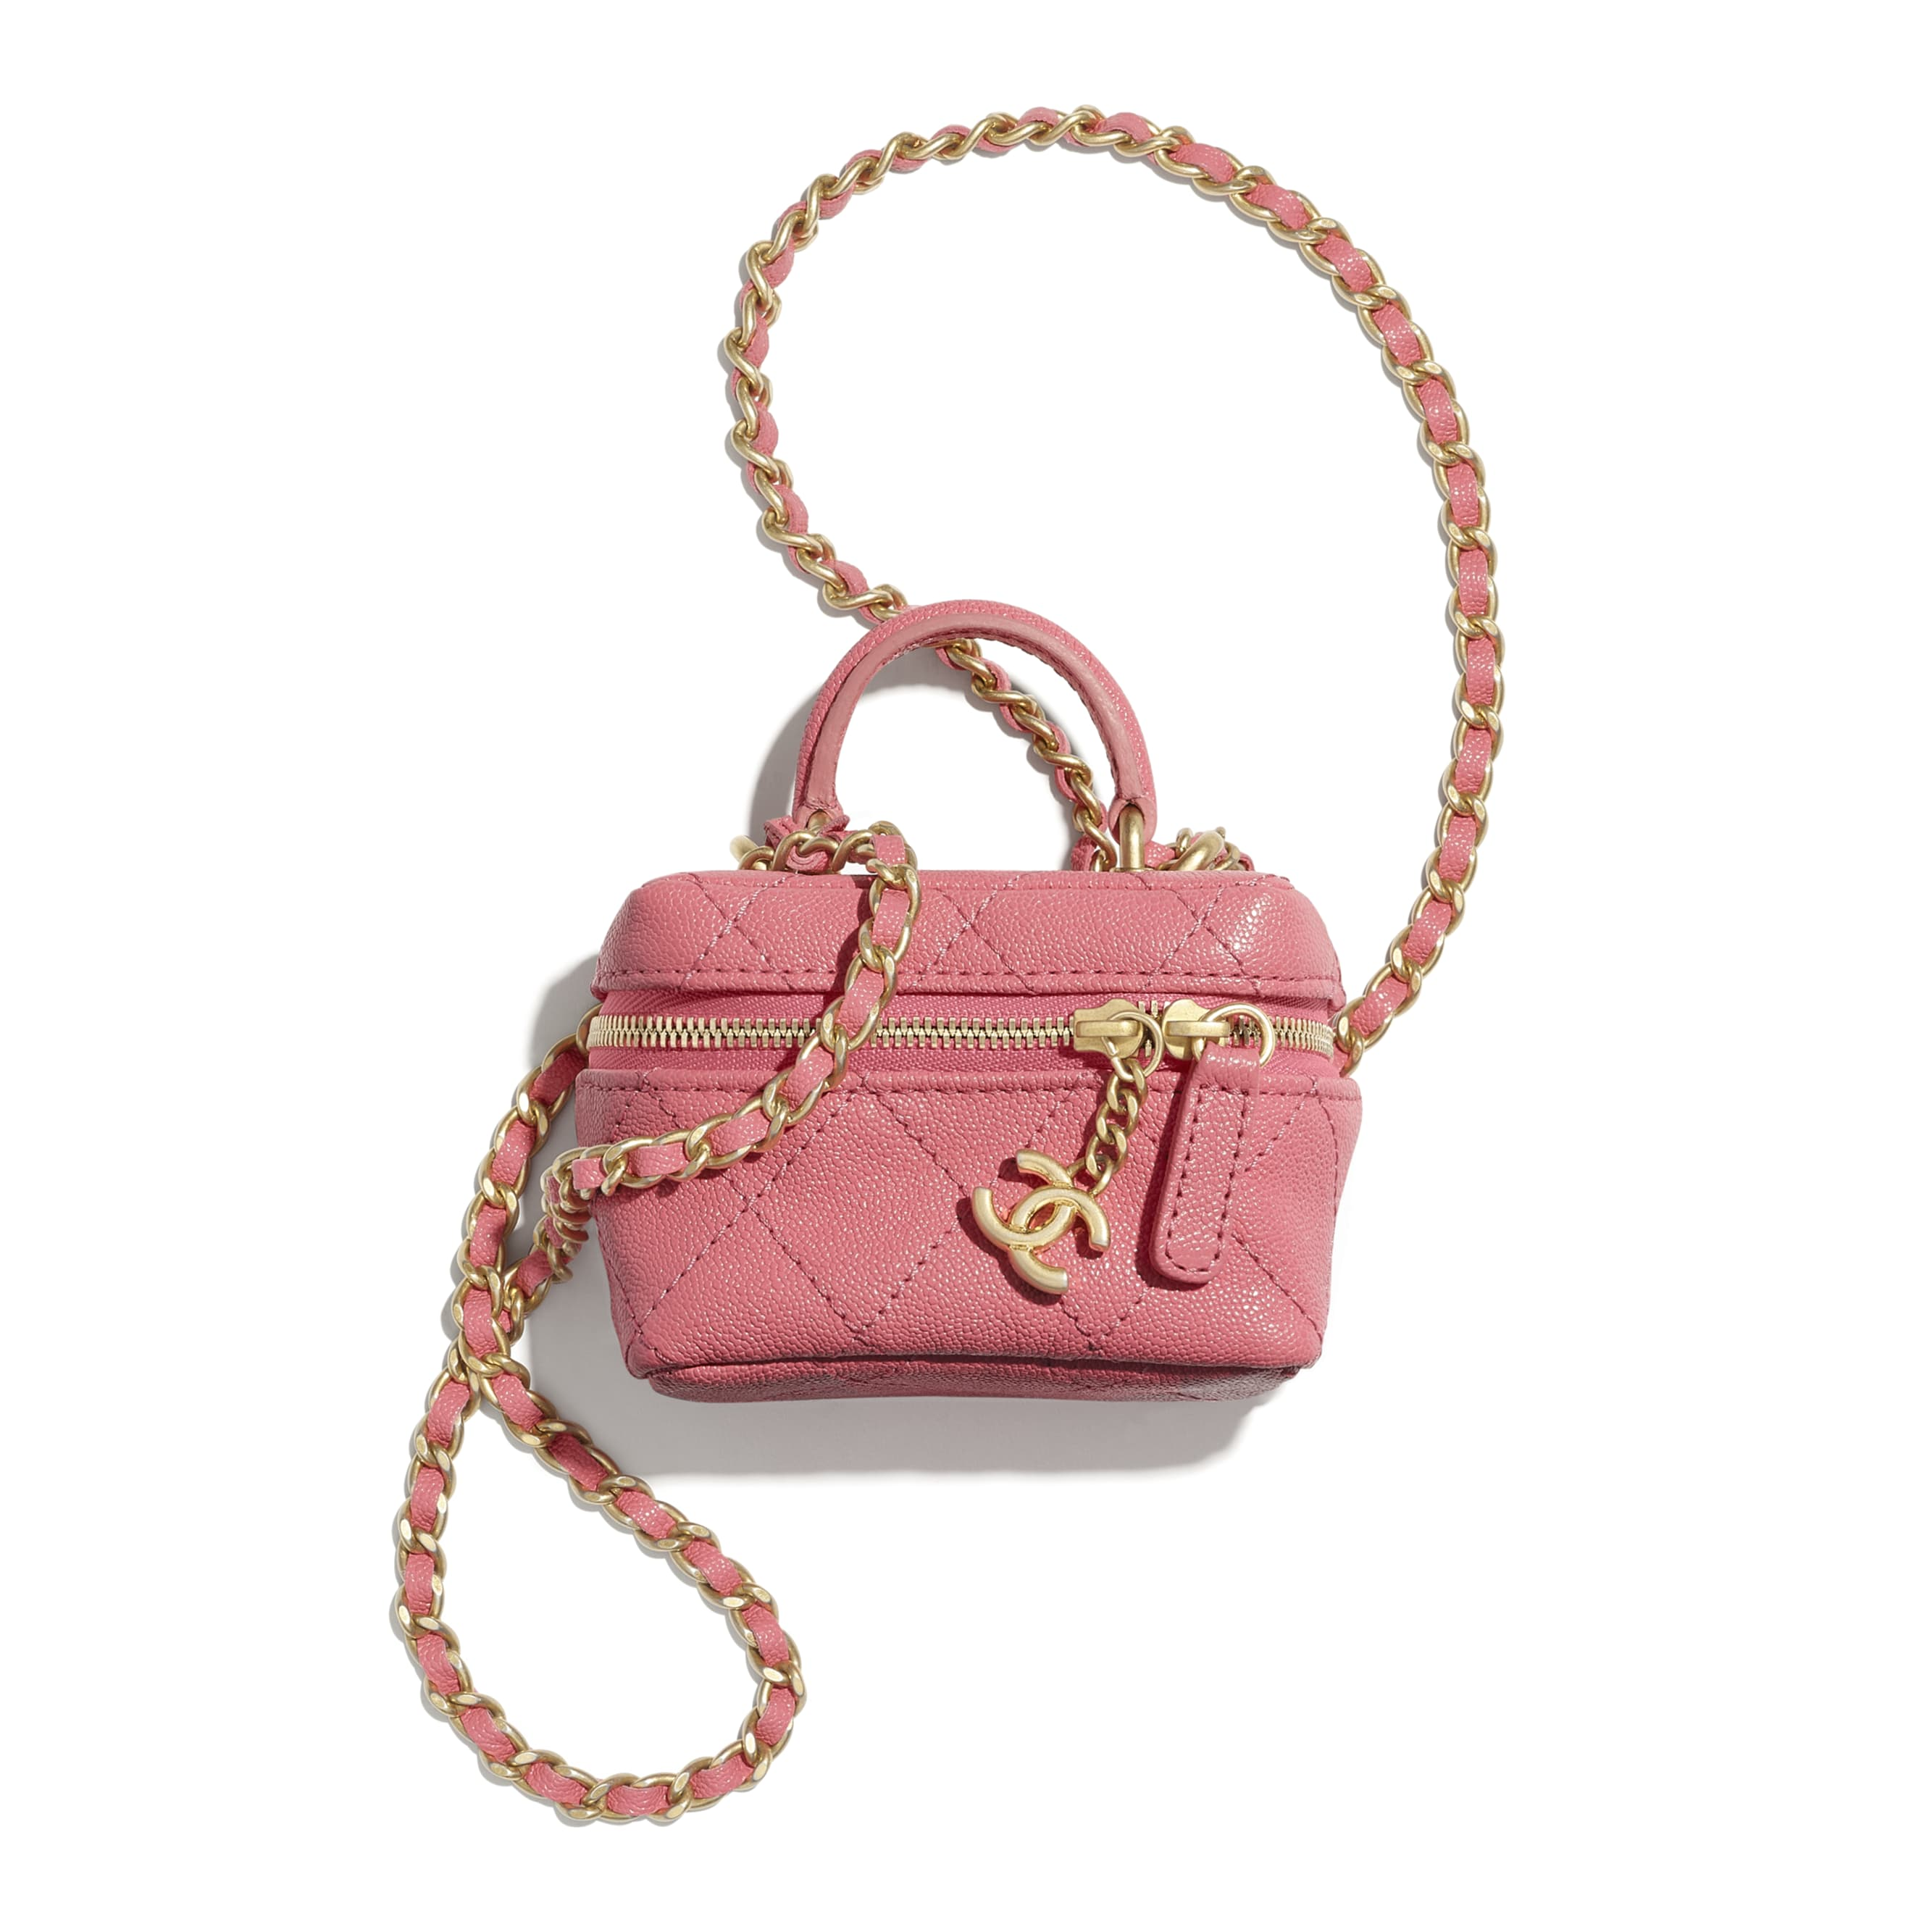 Small Vanity with Chain - Pink - Grained Calfskin & Gold-Tone Metal - CHANEL - Default view - see standard sized version